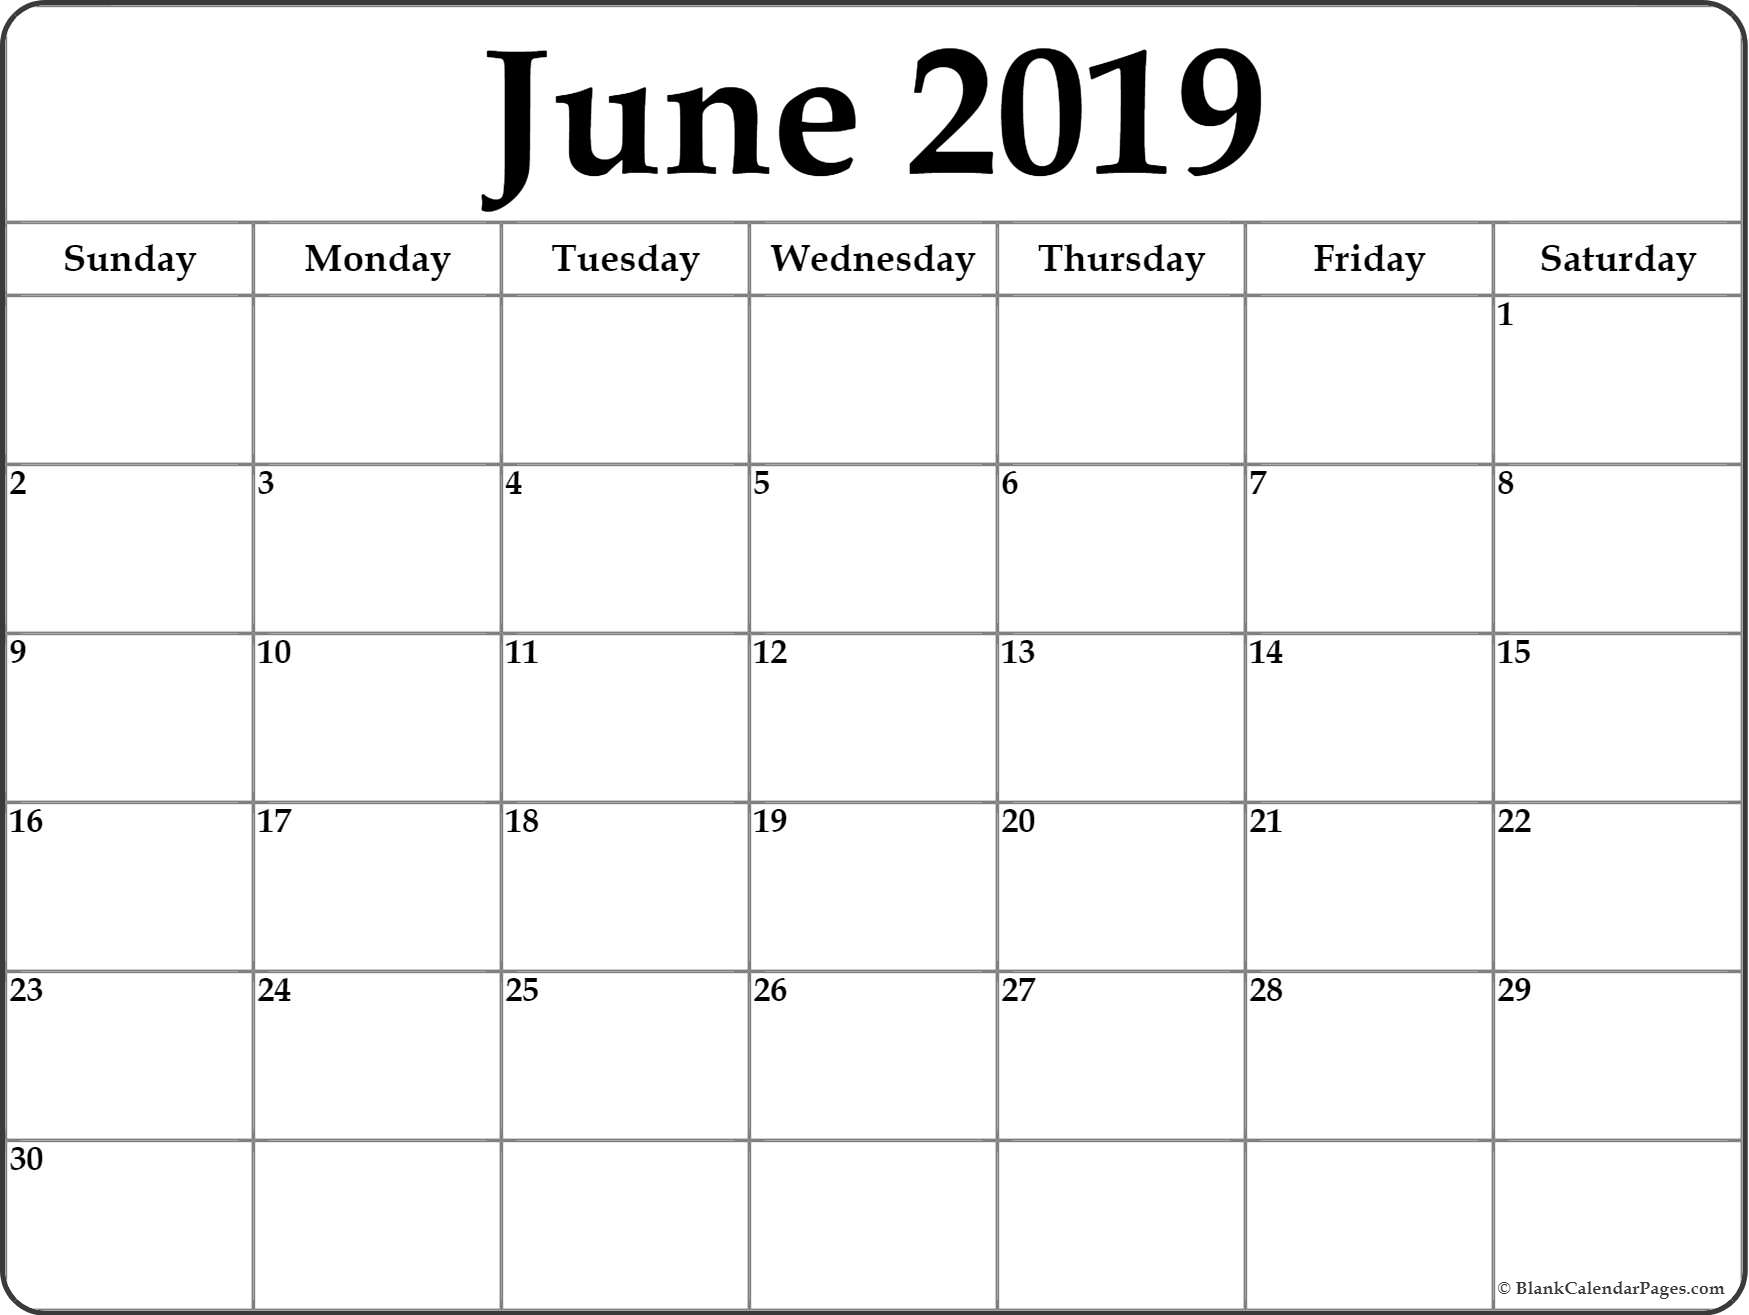 June 2019 Calendar | Free Printable Monthly Calendars for Printable Blank Calendar June